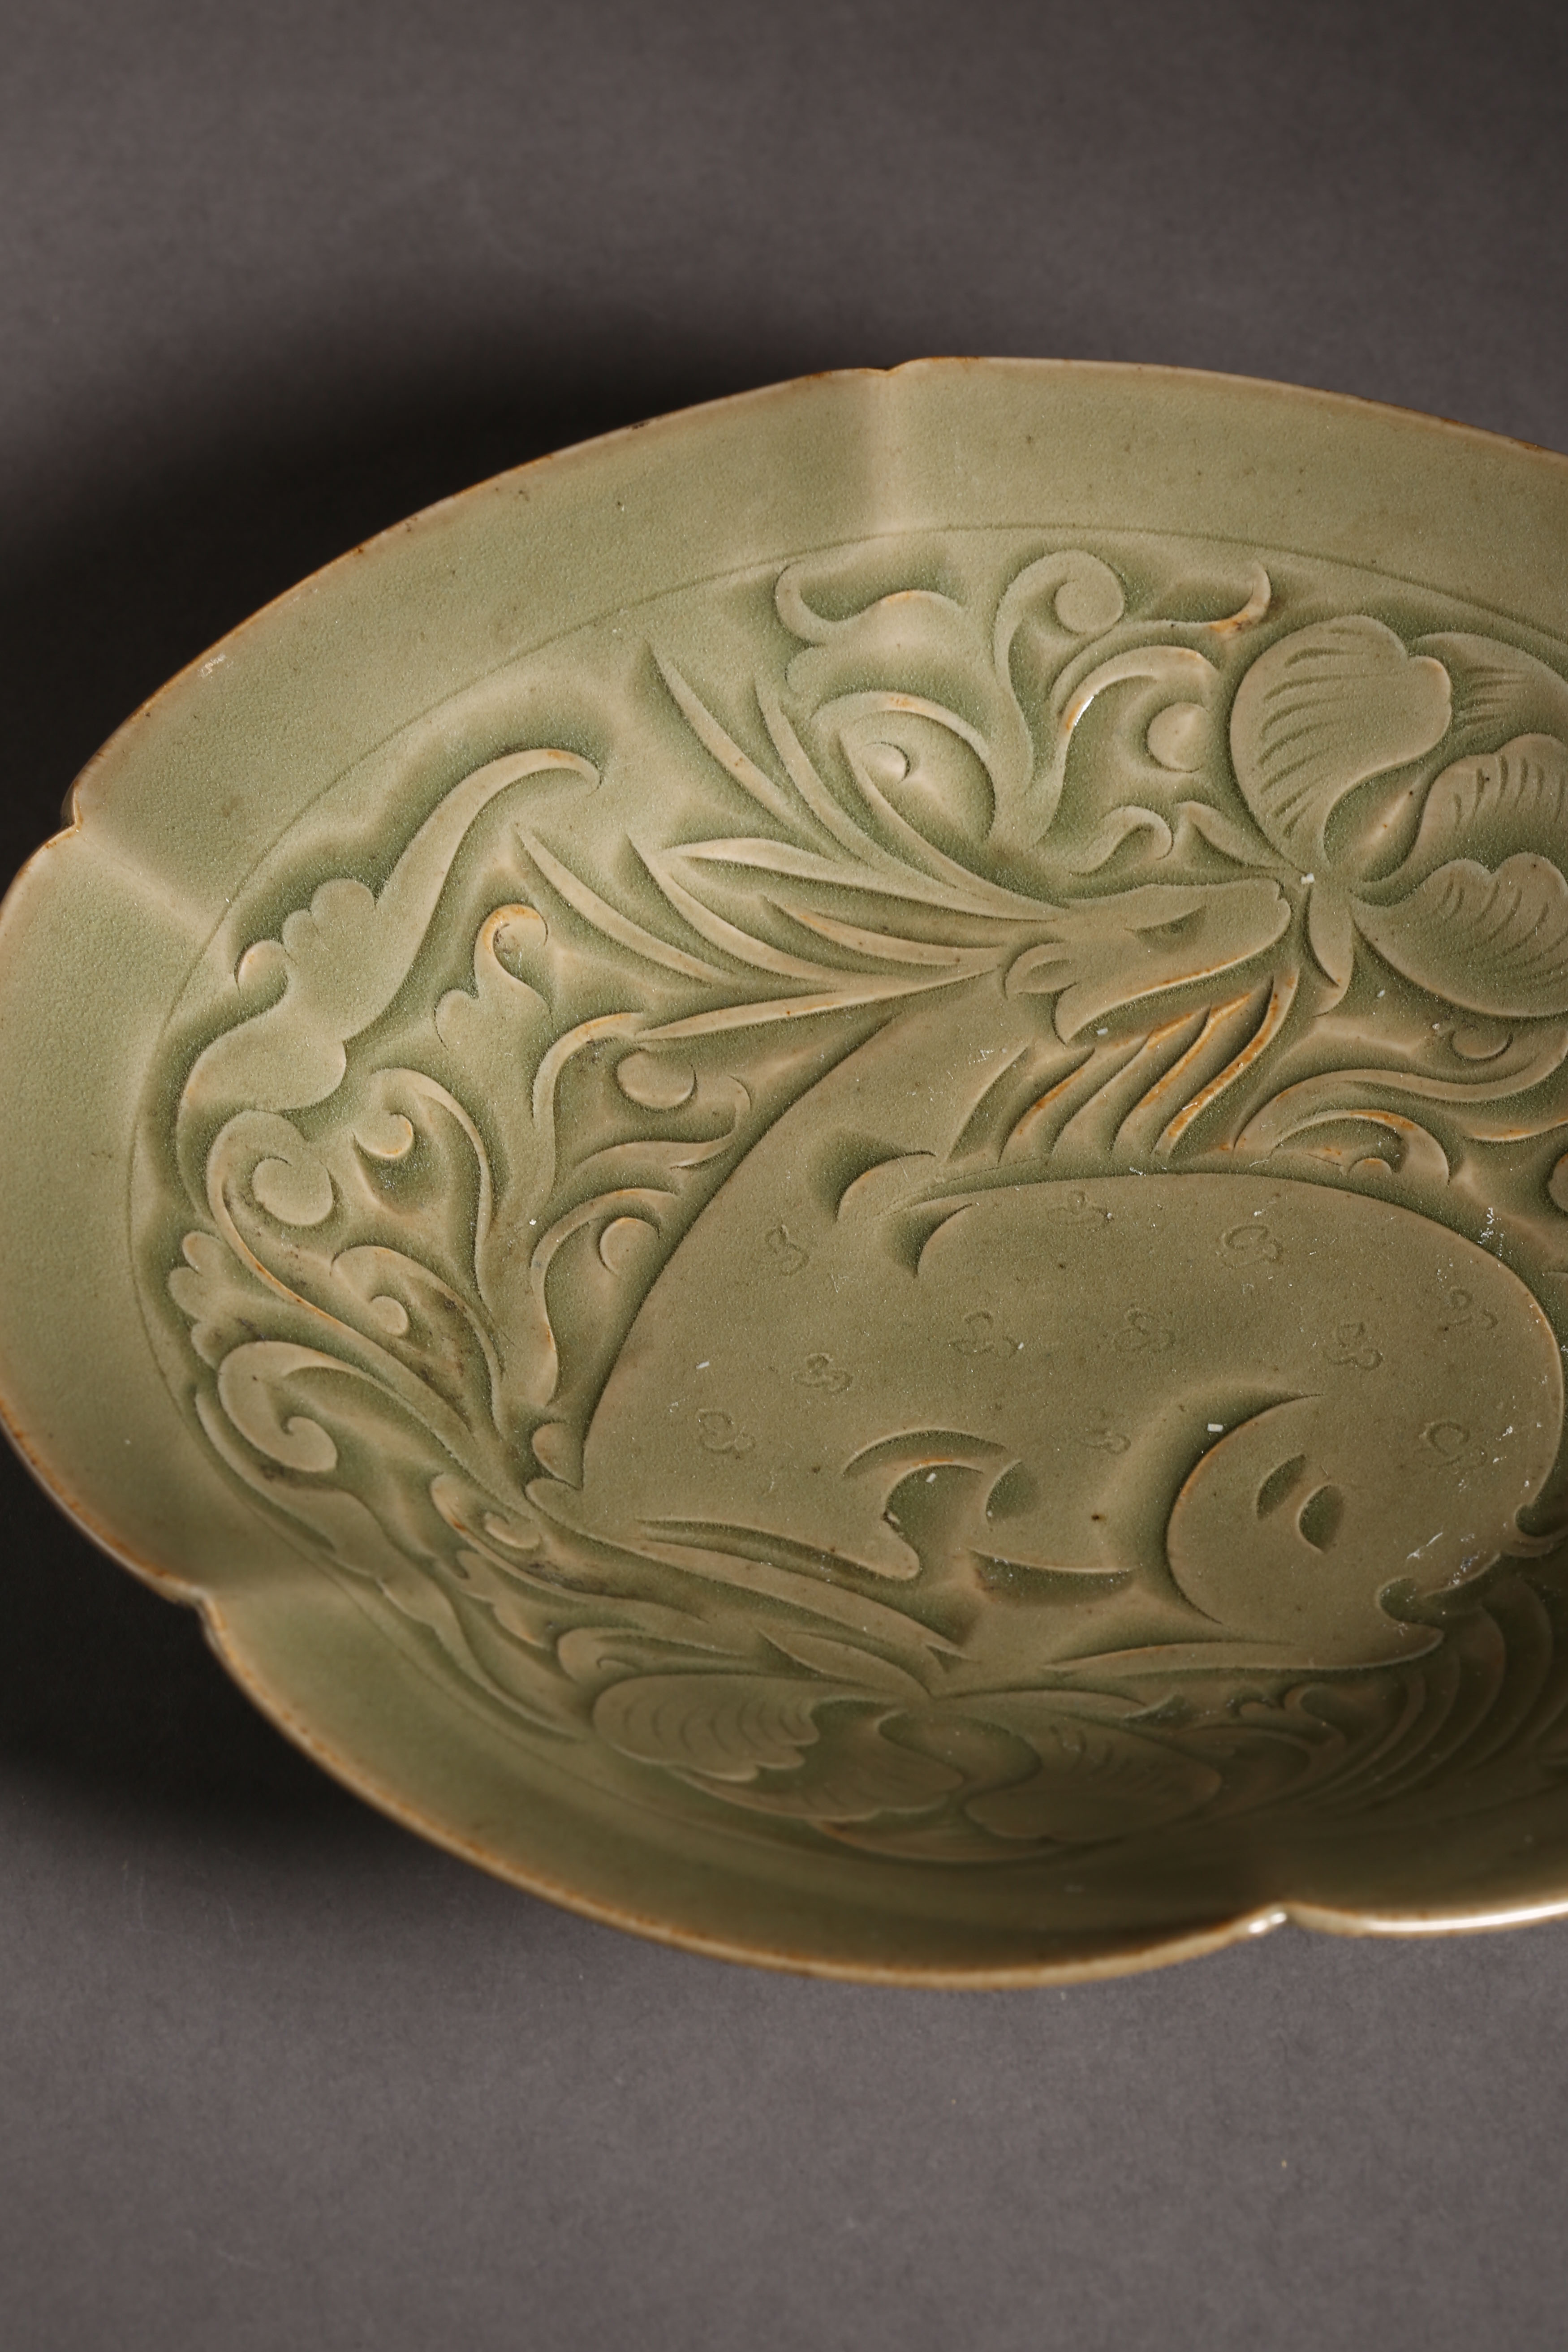 YAOZHOU KILN PLATE WITH RAFFITO DESIGN, NORTHERN SONG DYNASTY, CHINA - Image 5 of 9